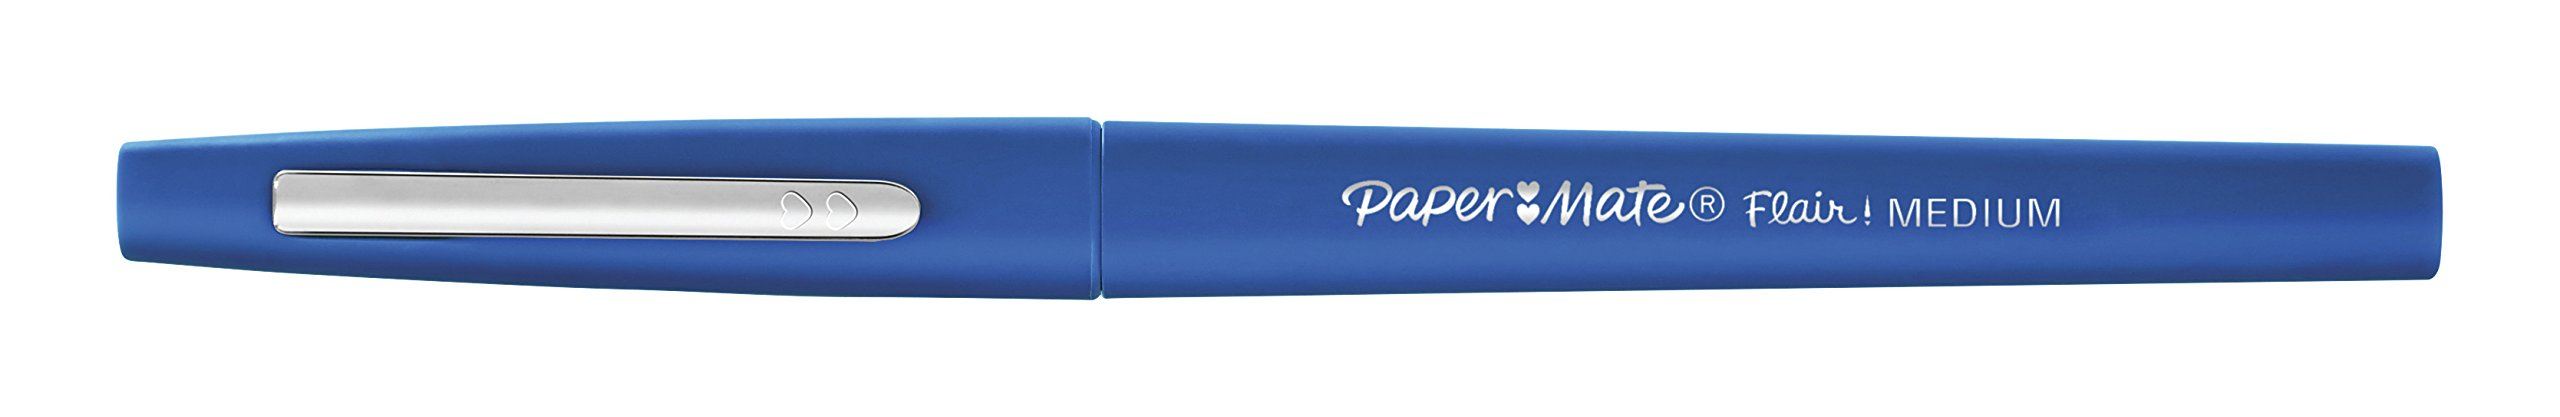 Paper Mate Flair Felt Tip Pens, Medium Point (0.7mm), Blue, 12 Count by Paper Mate (Image #2)